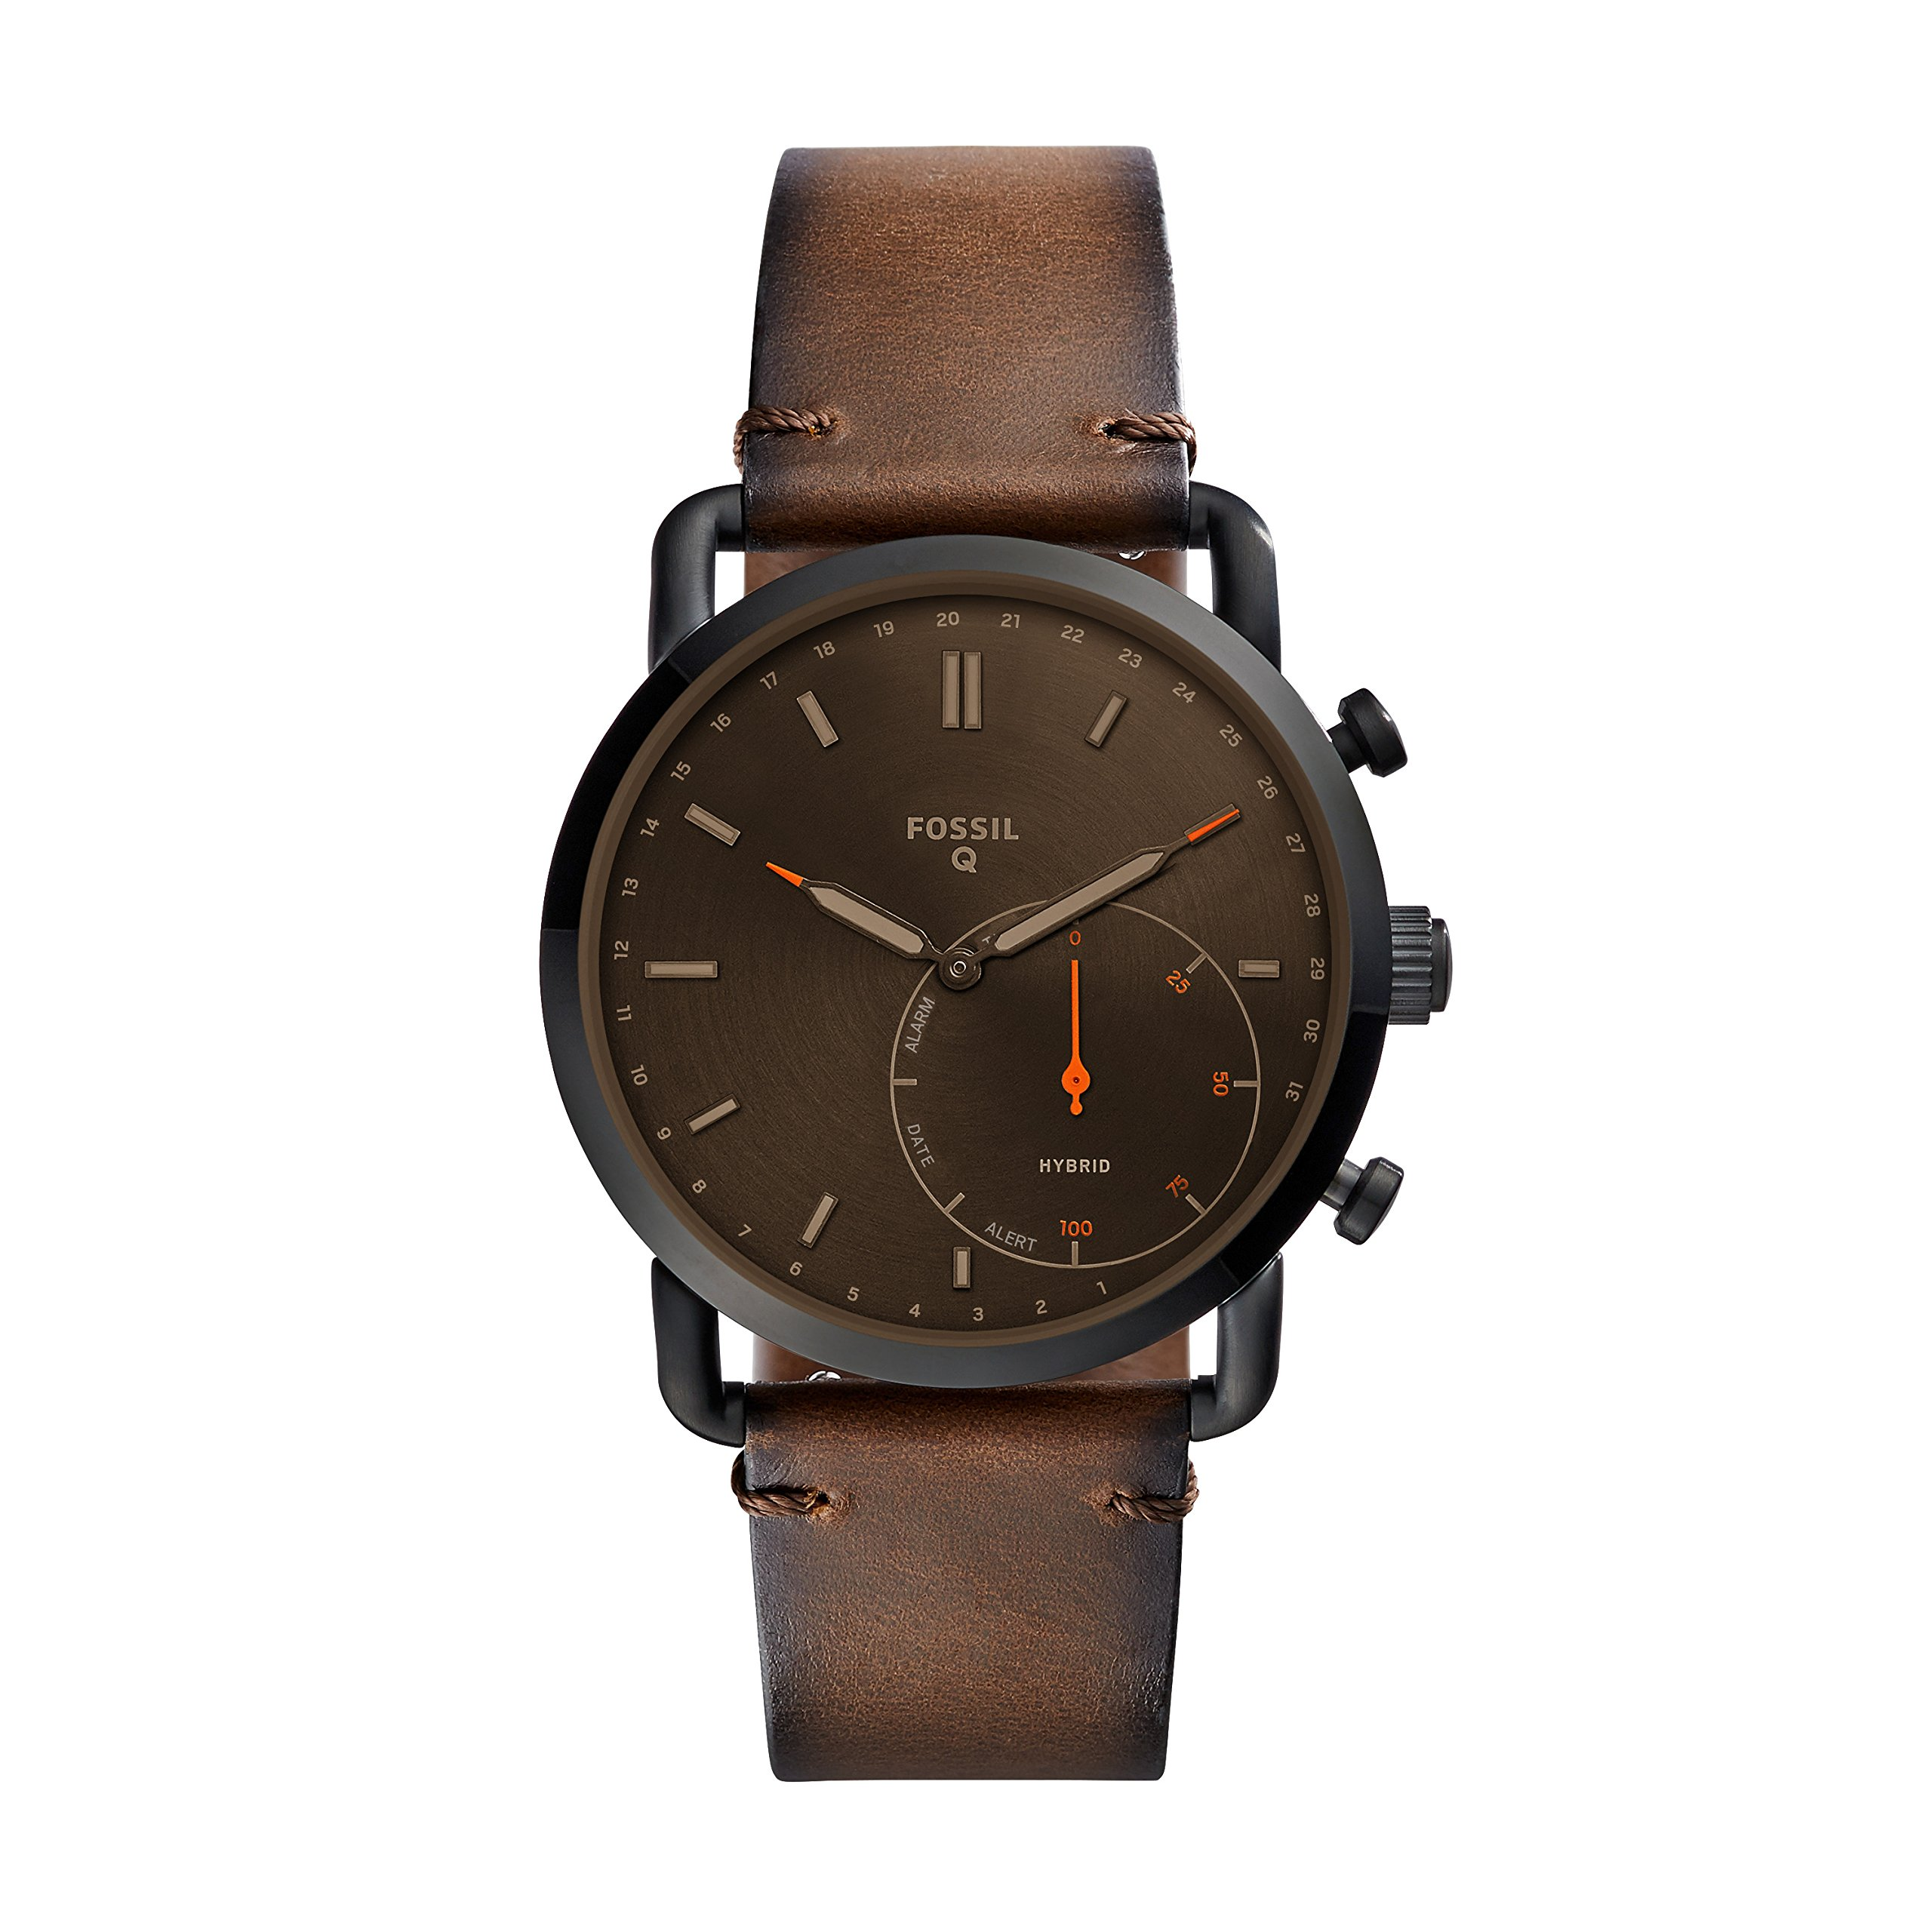 Fossil Men's Commuter Stainless Steel and Leather Hybrid Smartwatch, Color: Black, Brown (Model: FTW1149) by Fossil